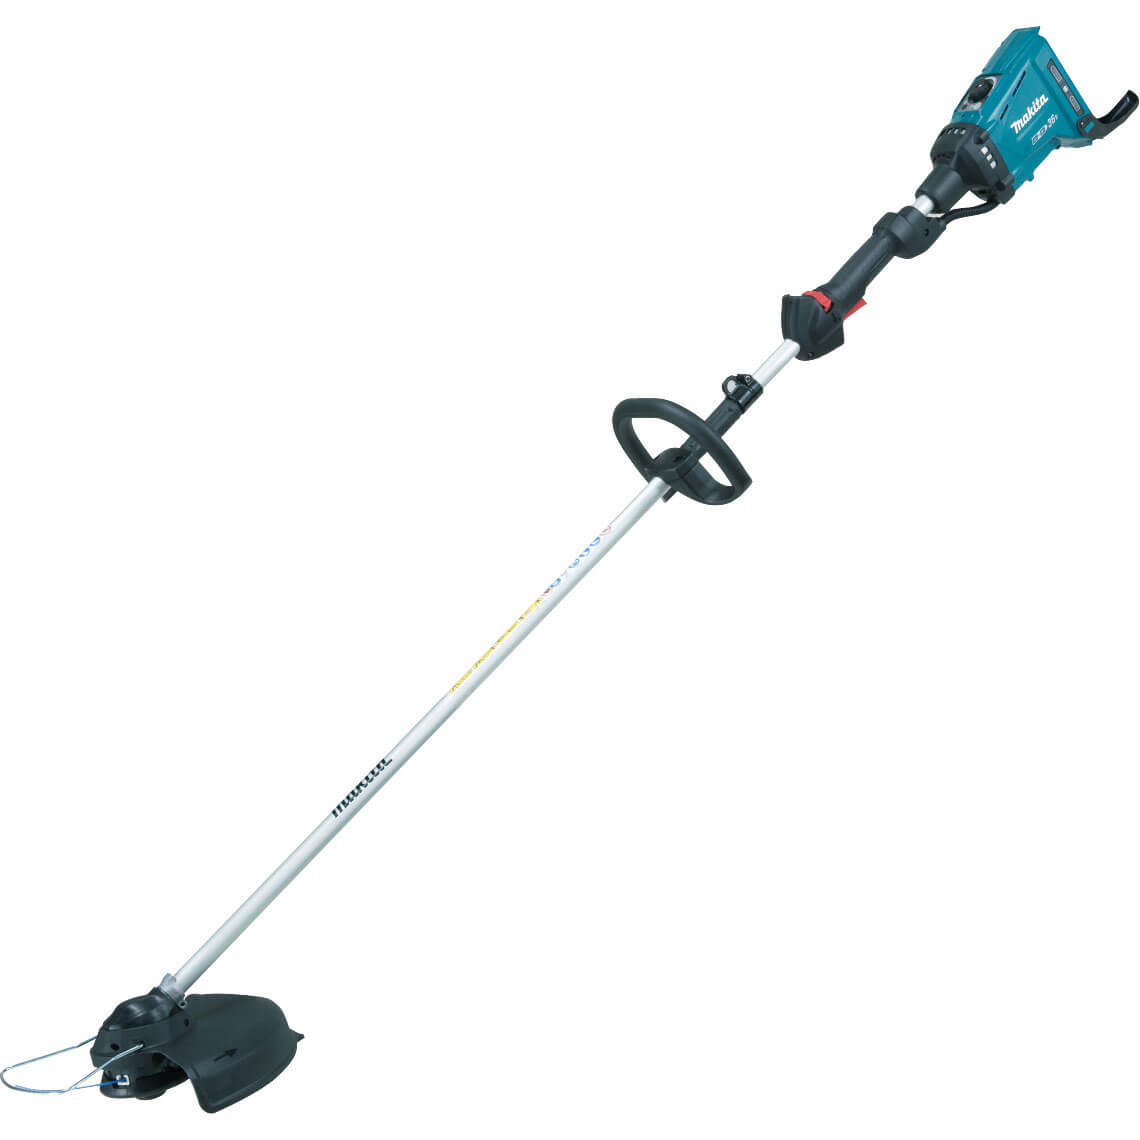 Makita DUR362LZ Twin 18v Cordless LXT Grass Trimmer without Battery or Charger